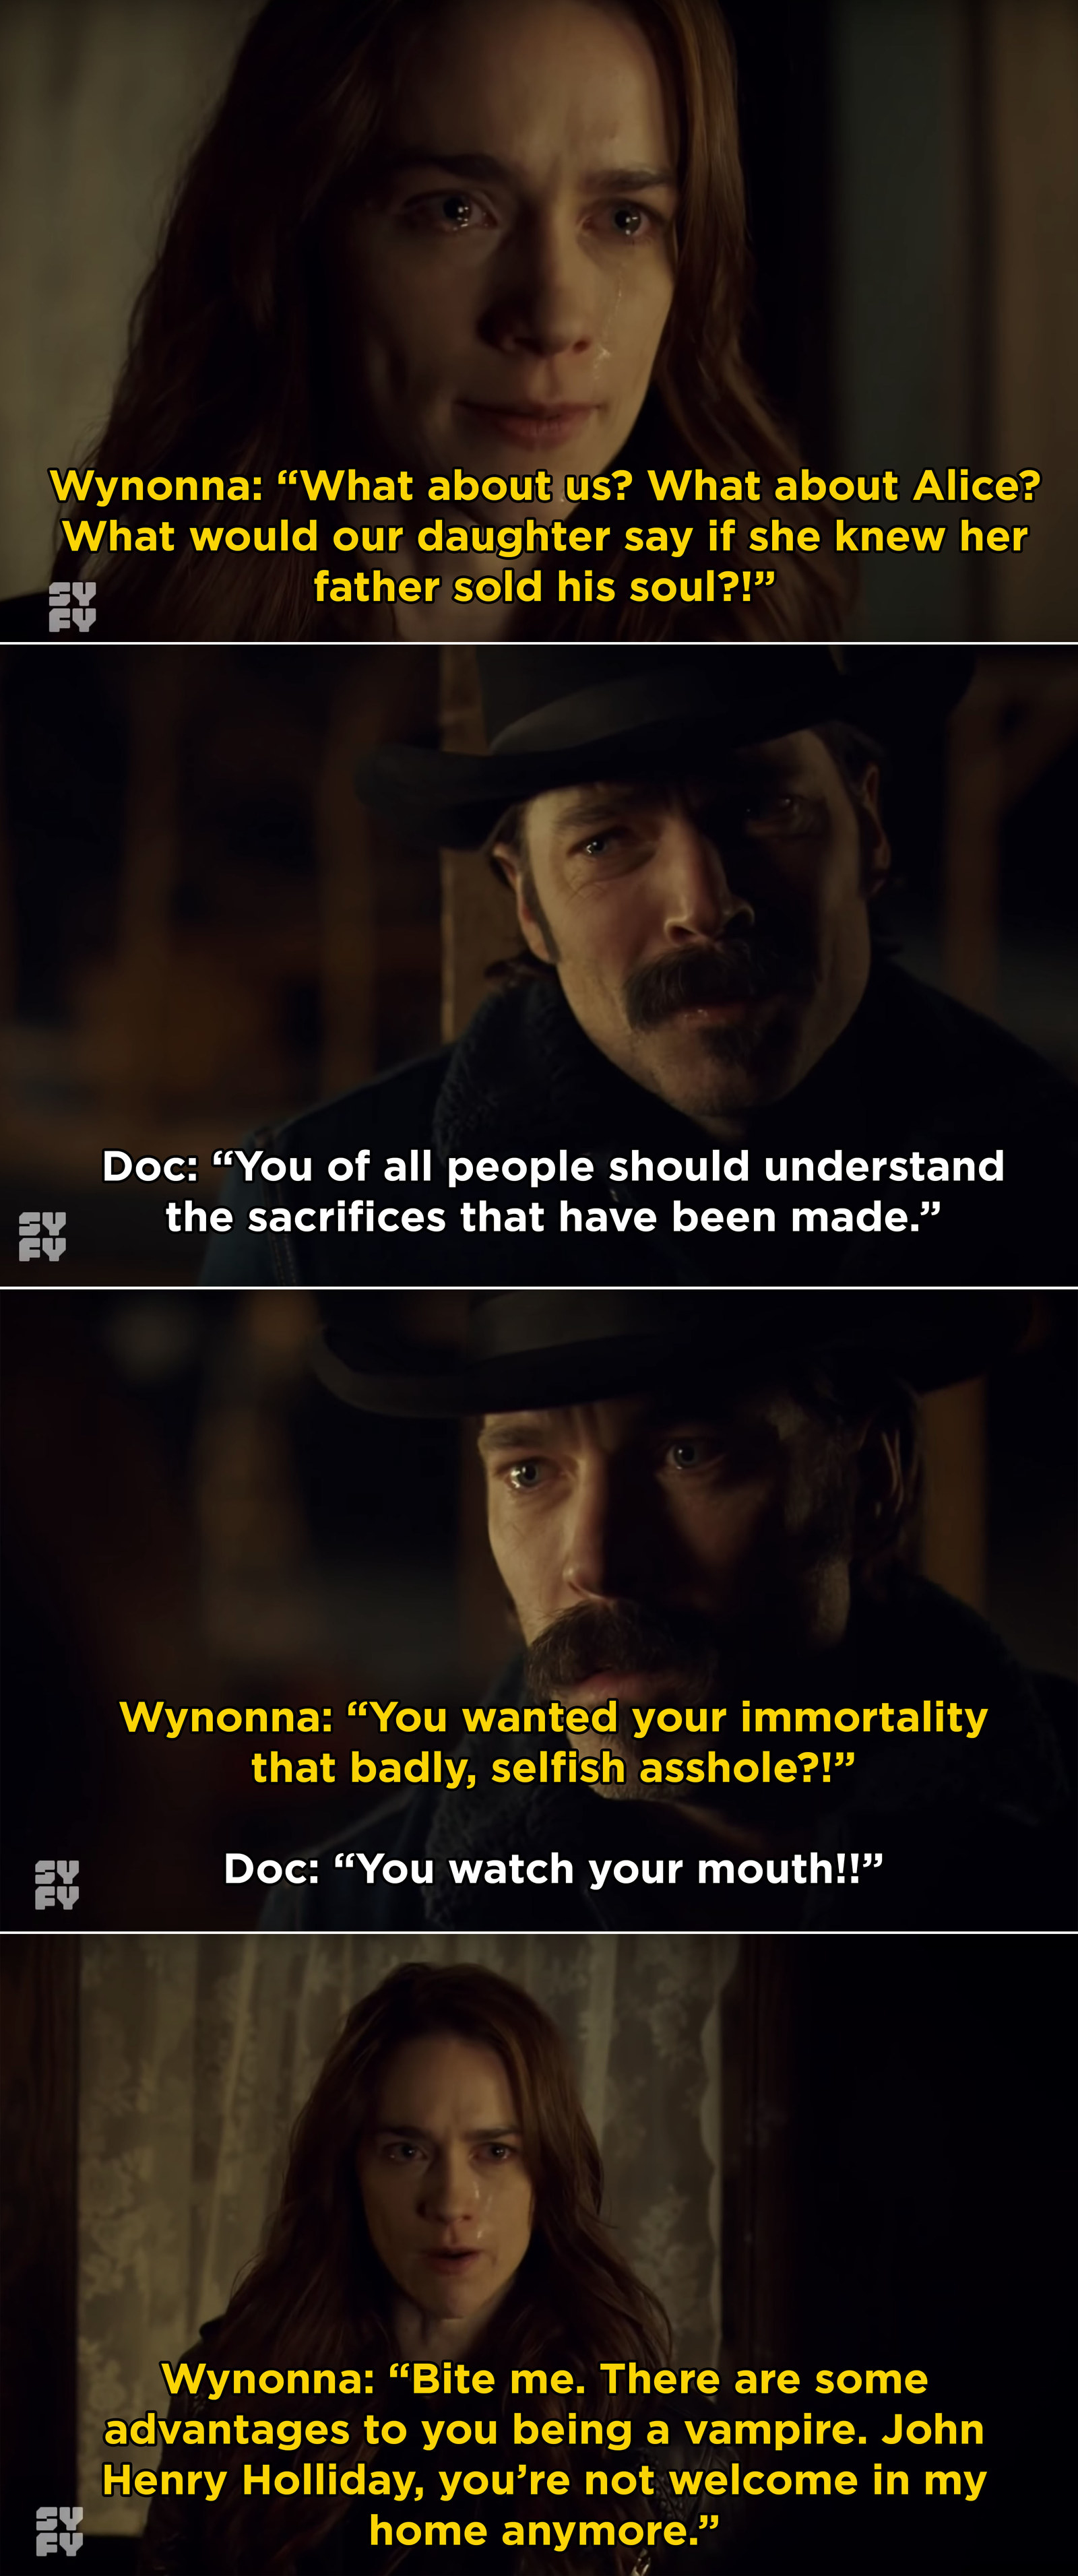 In  Wynonna Earp , Doc decided to become a vampire in order to stay immortal, leading to this heartbreaking moment between him and Wynonna.